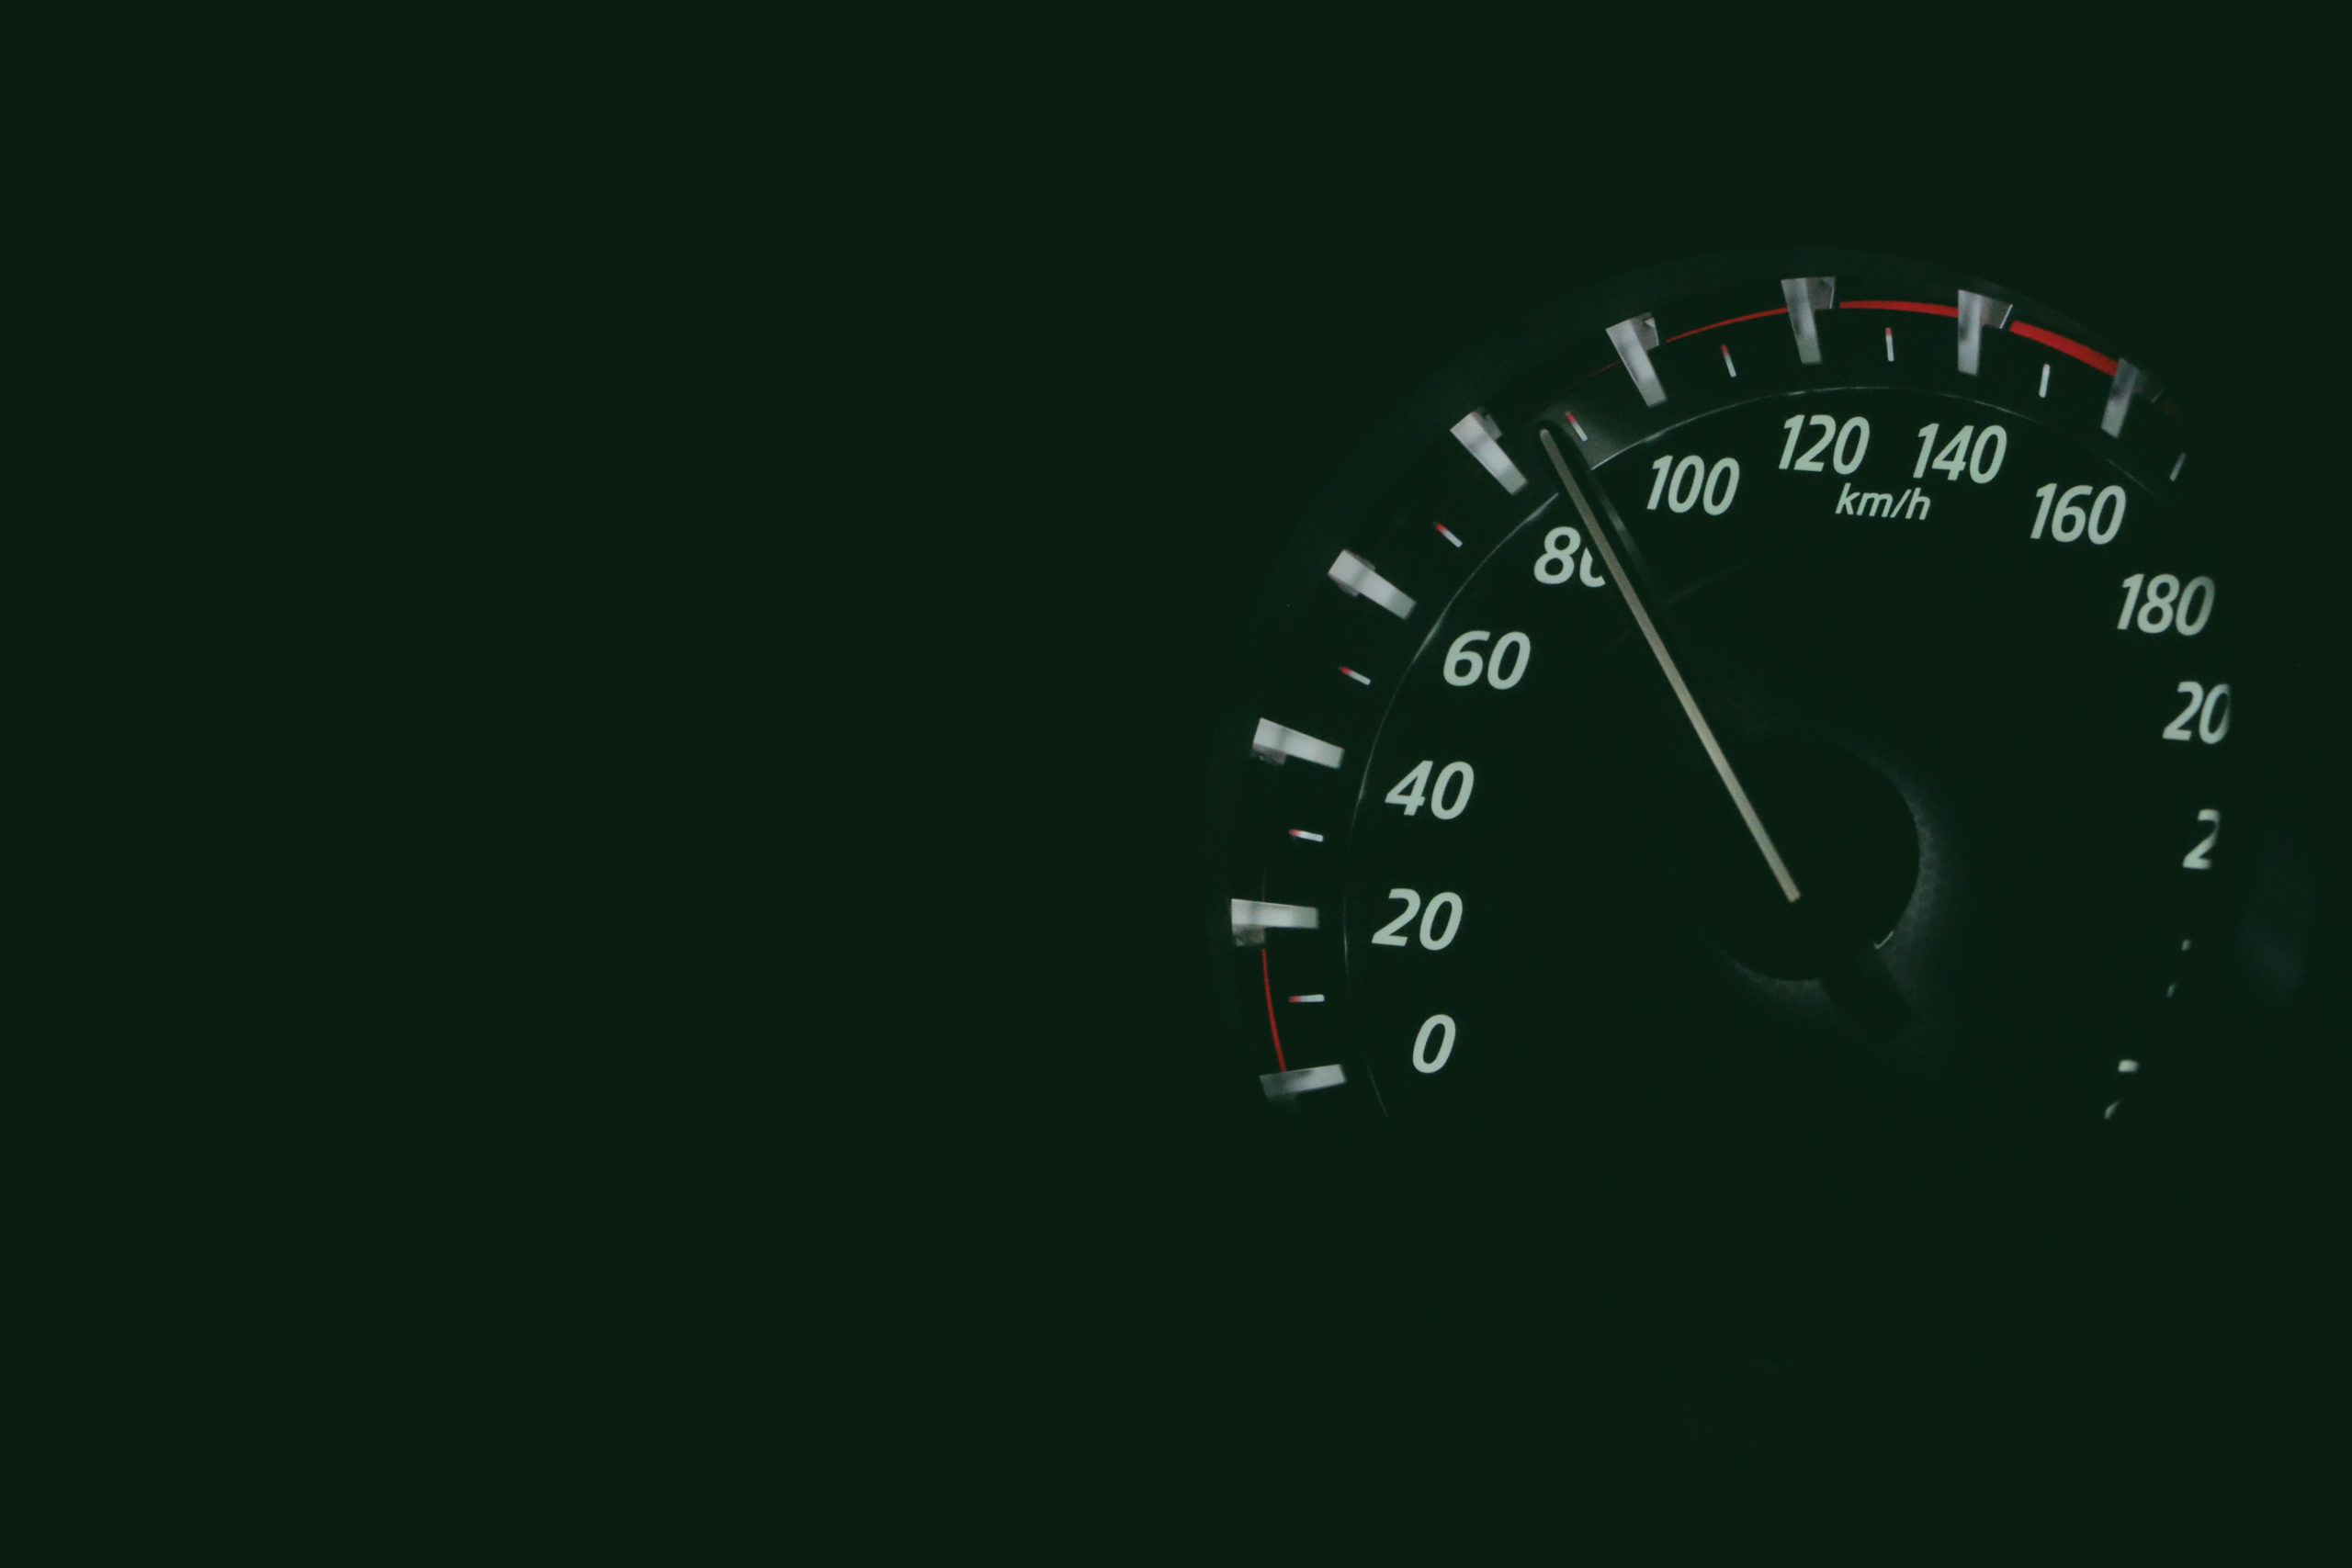 speedometer against a black background